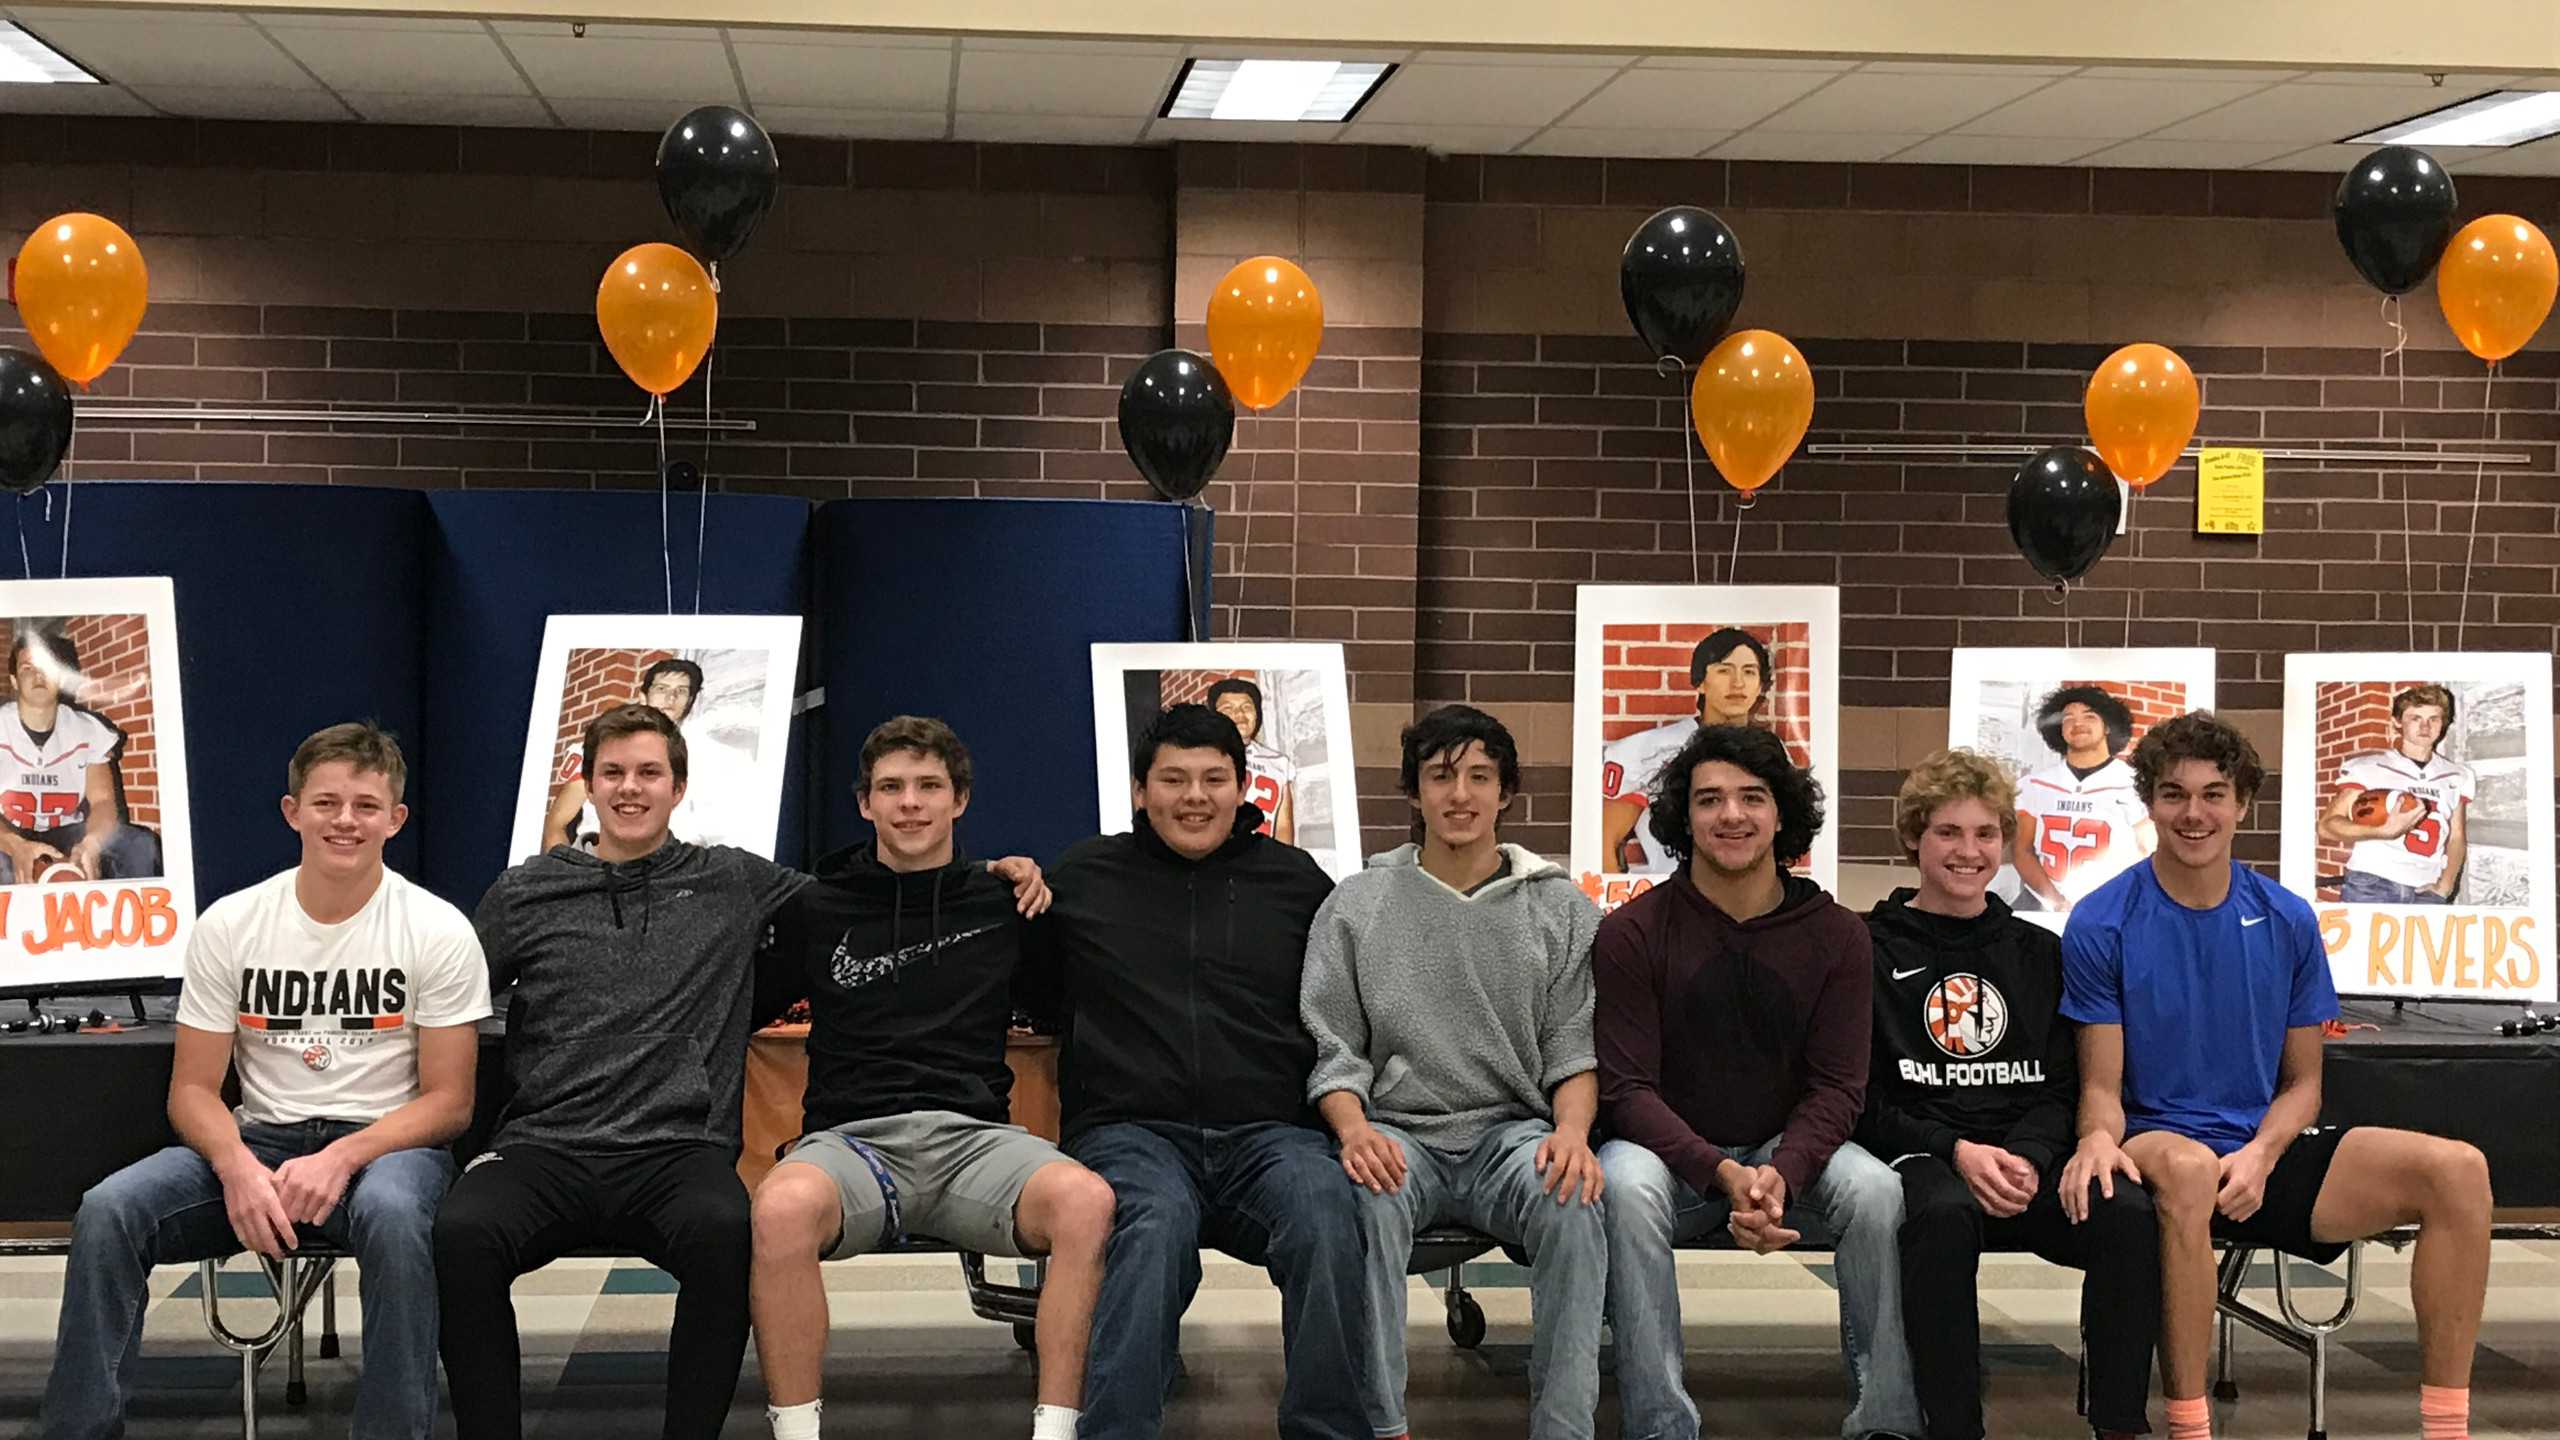 8 Senior boys will be saying goodbye to their BHS Football Career, but first we celebrate their time with us.